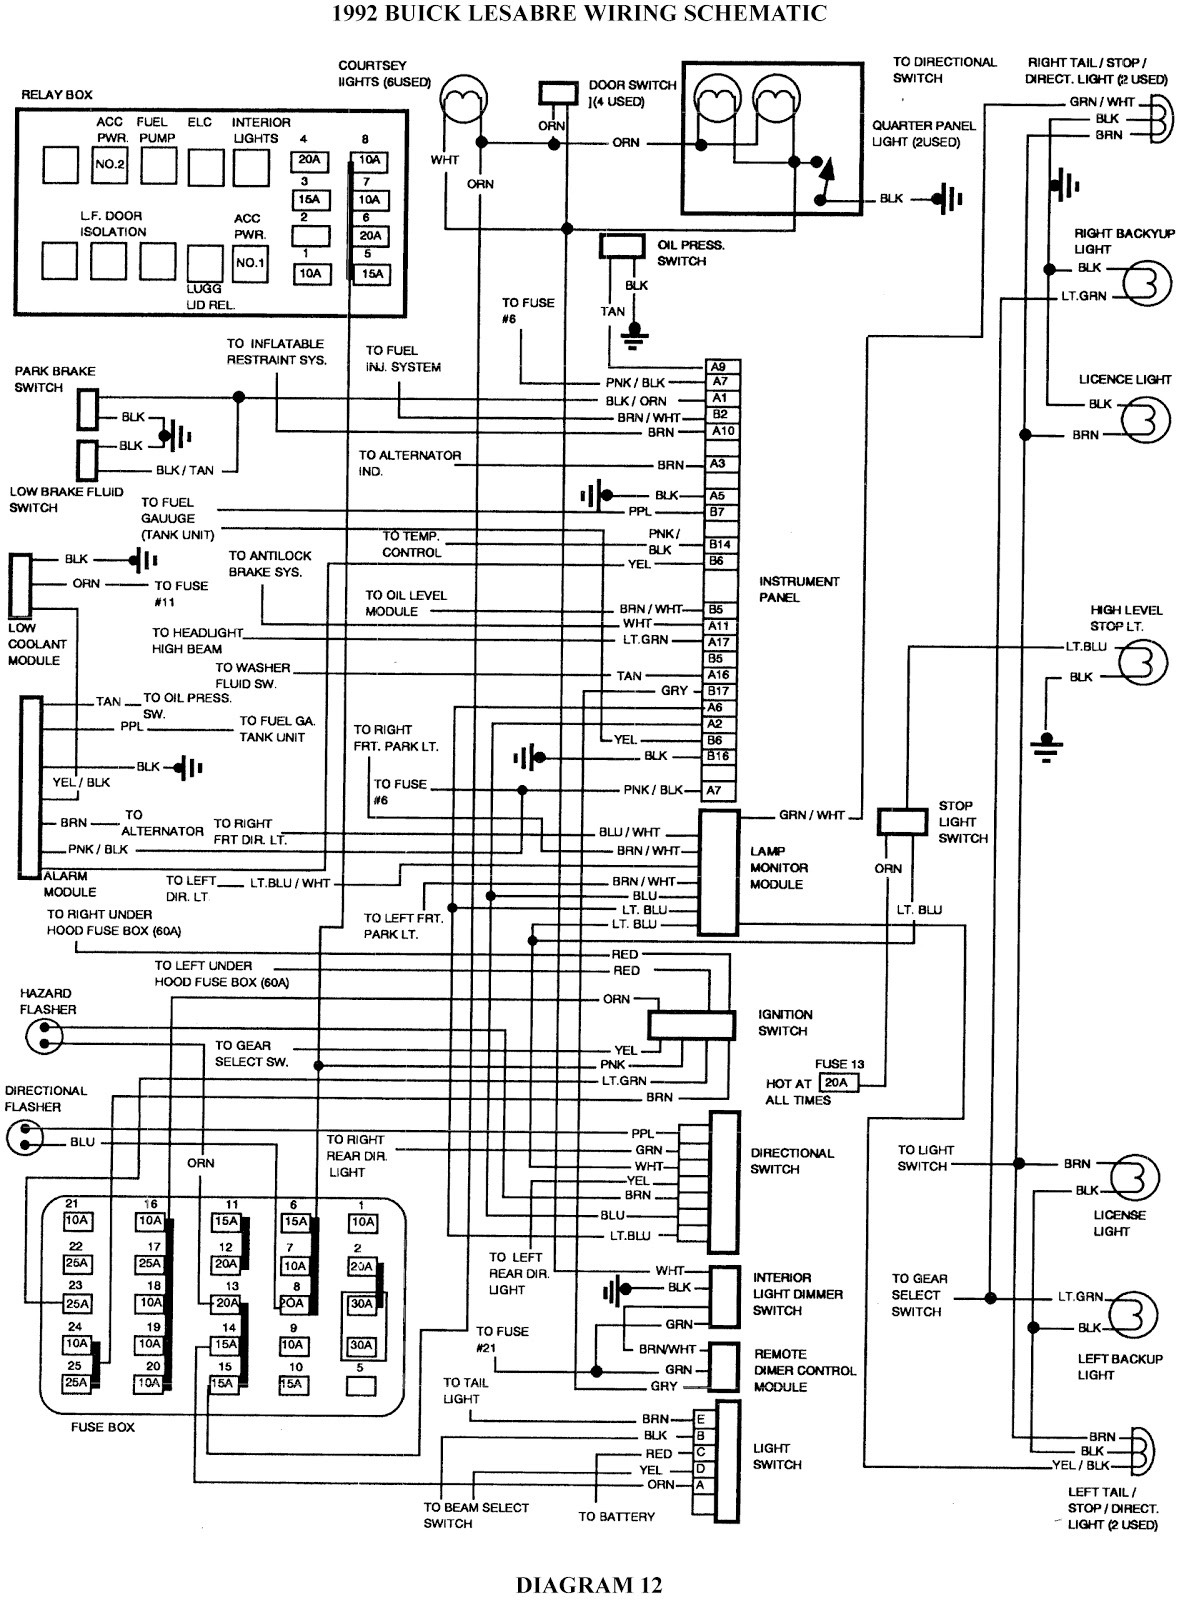 1992 gmc stereo wiring diagram